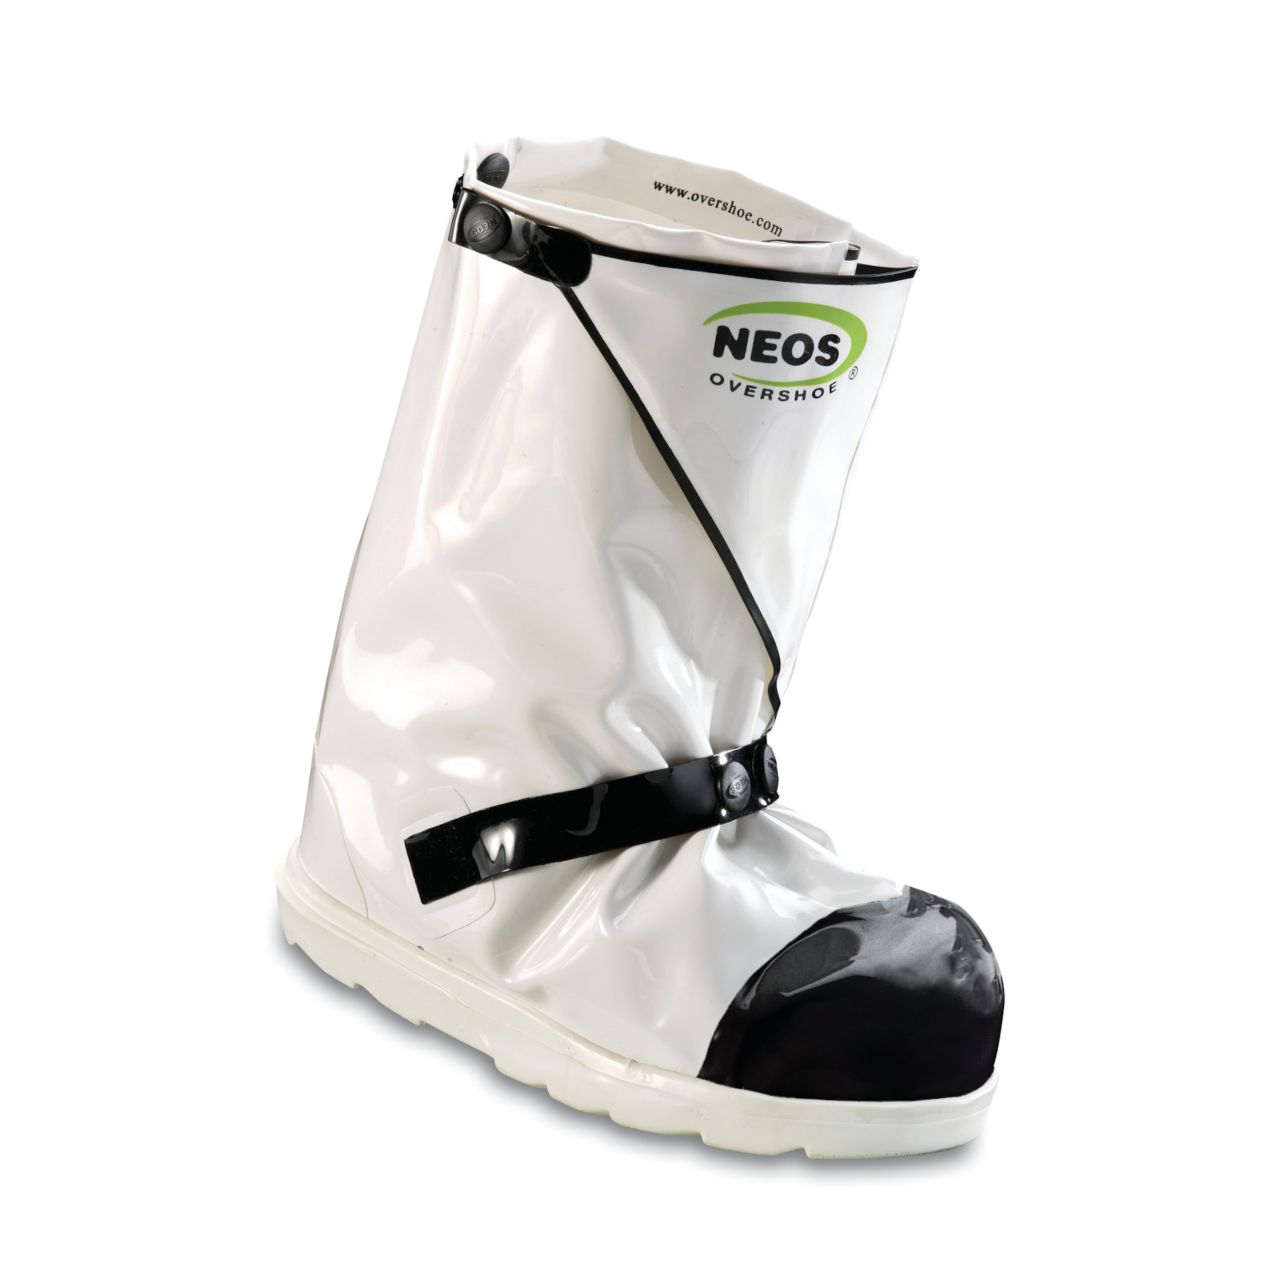 HS_neos_processing_overshoe_neos_it12st01